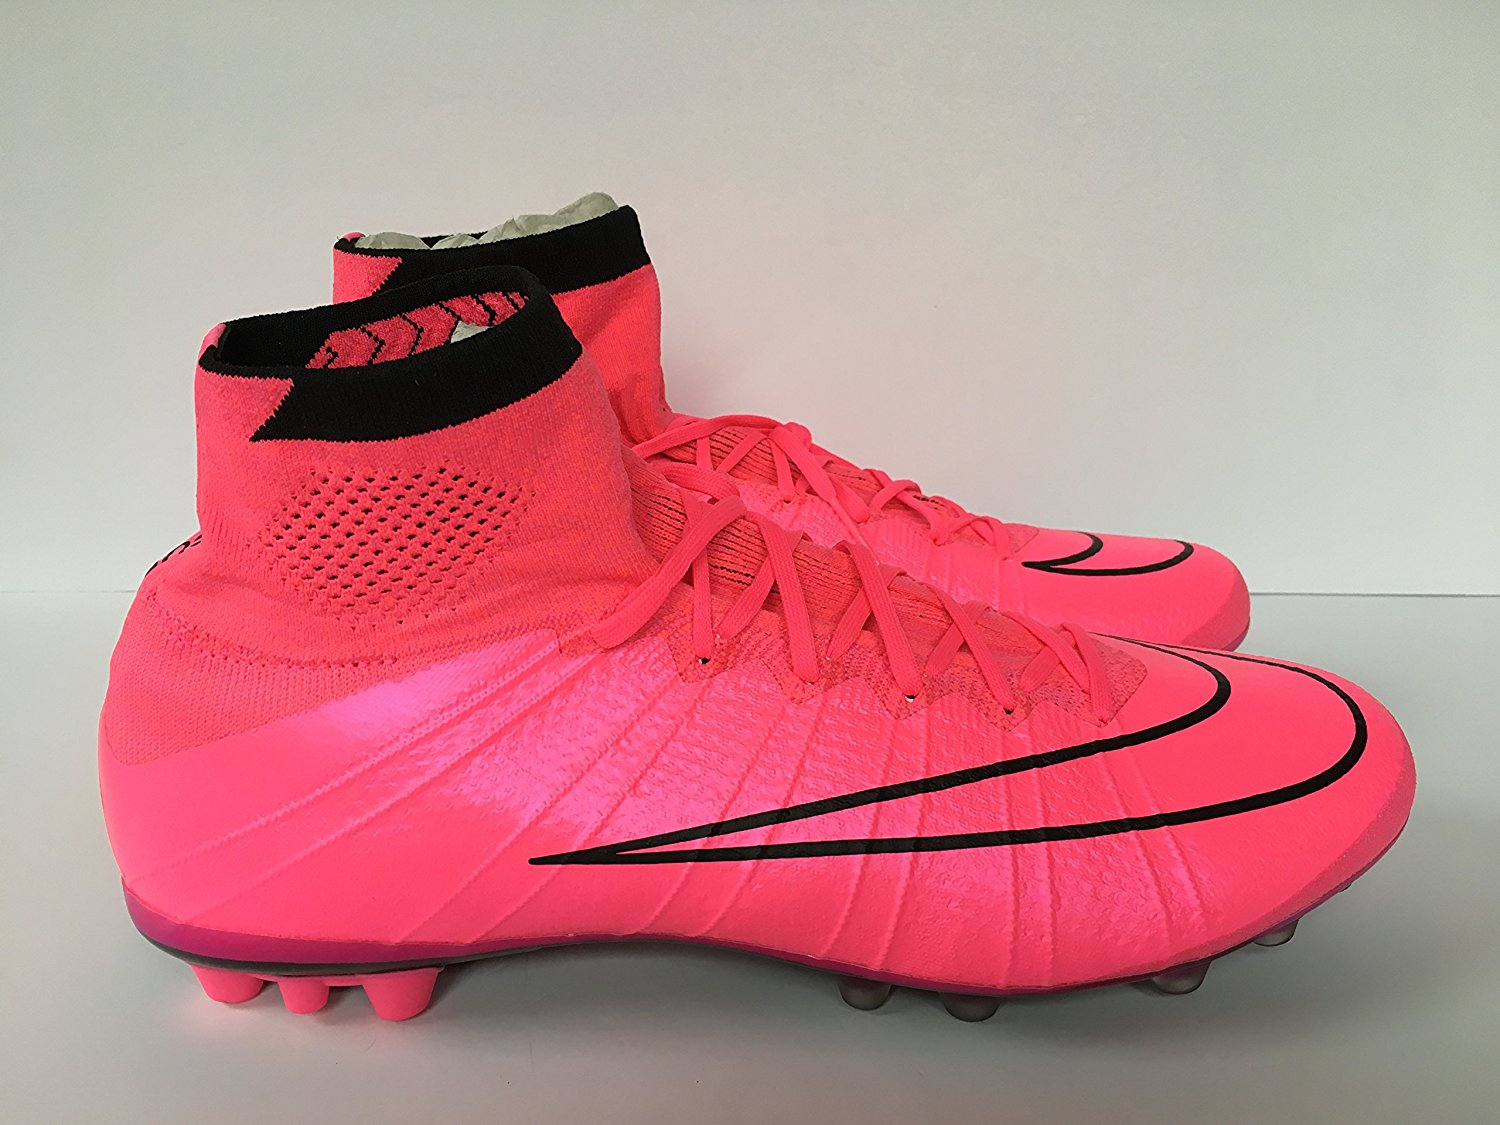 timeless design 58ccb 105c3 NIKE MERCURIAL SUPERFLY AG-R HYPER PINK-BLACK Sz 11  717138-660